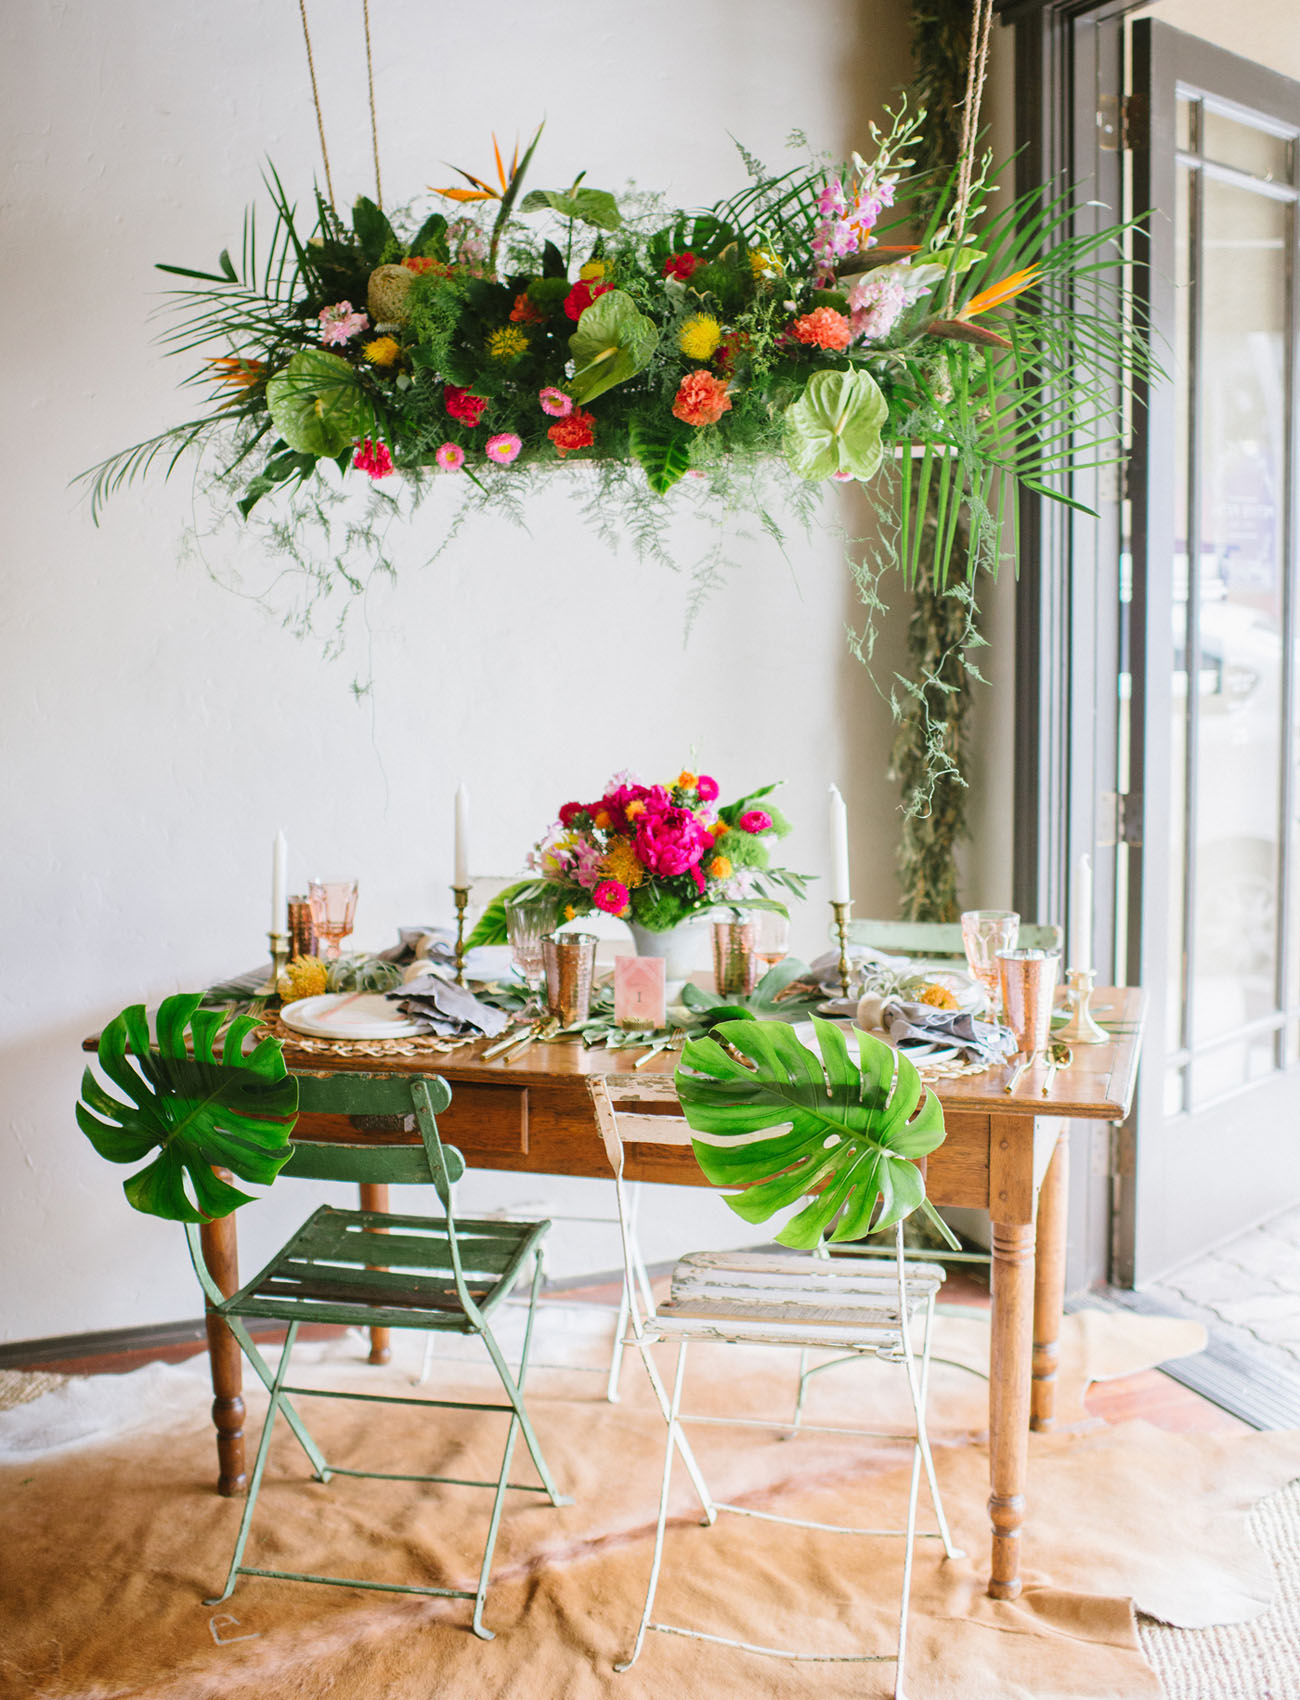 Best Modern Tropical Wedding Inspiration From Minted A 500 This Month